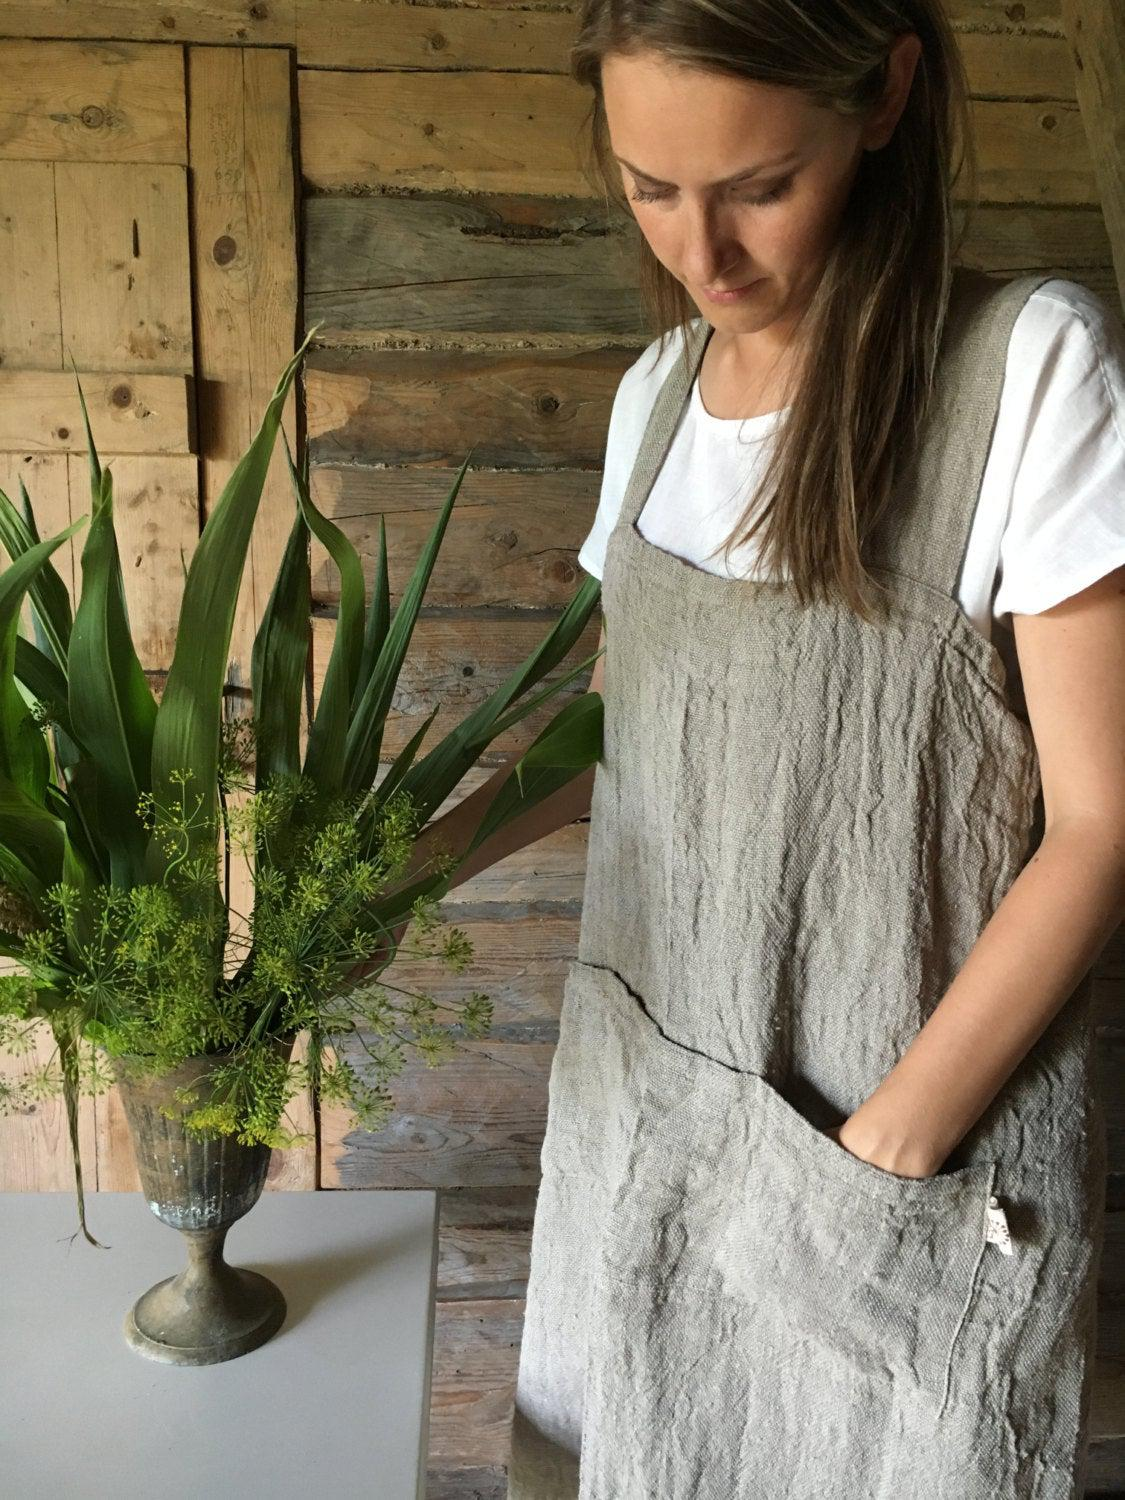 Rustic Pinafore Apron, Japanese Apron, Long Linen Apron, Kitchen Apron, Crafts Apron, Womens Apron, Vintage, Handmade, Cross over apron